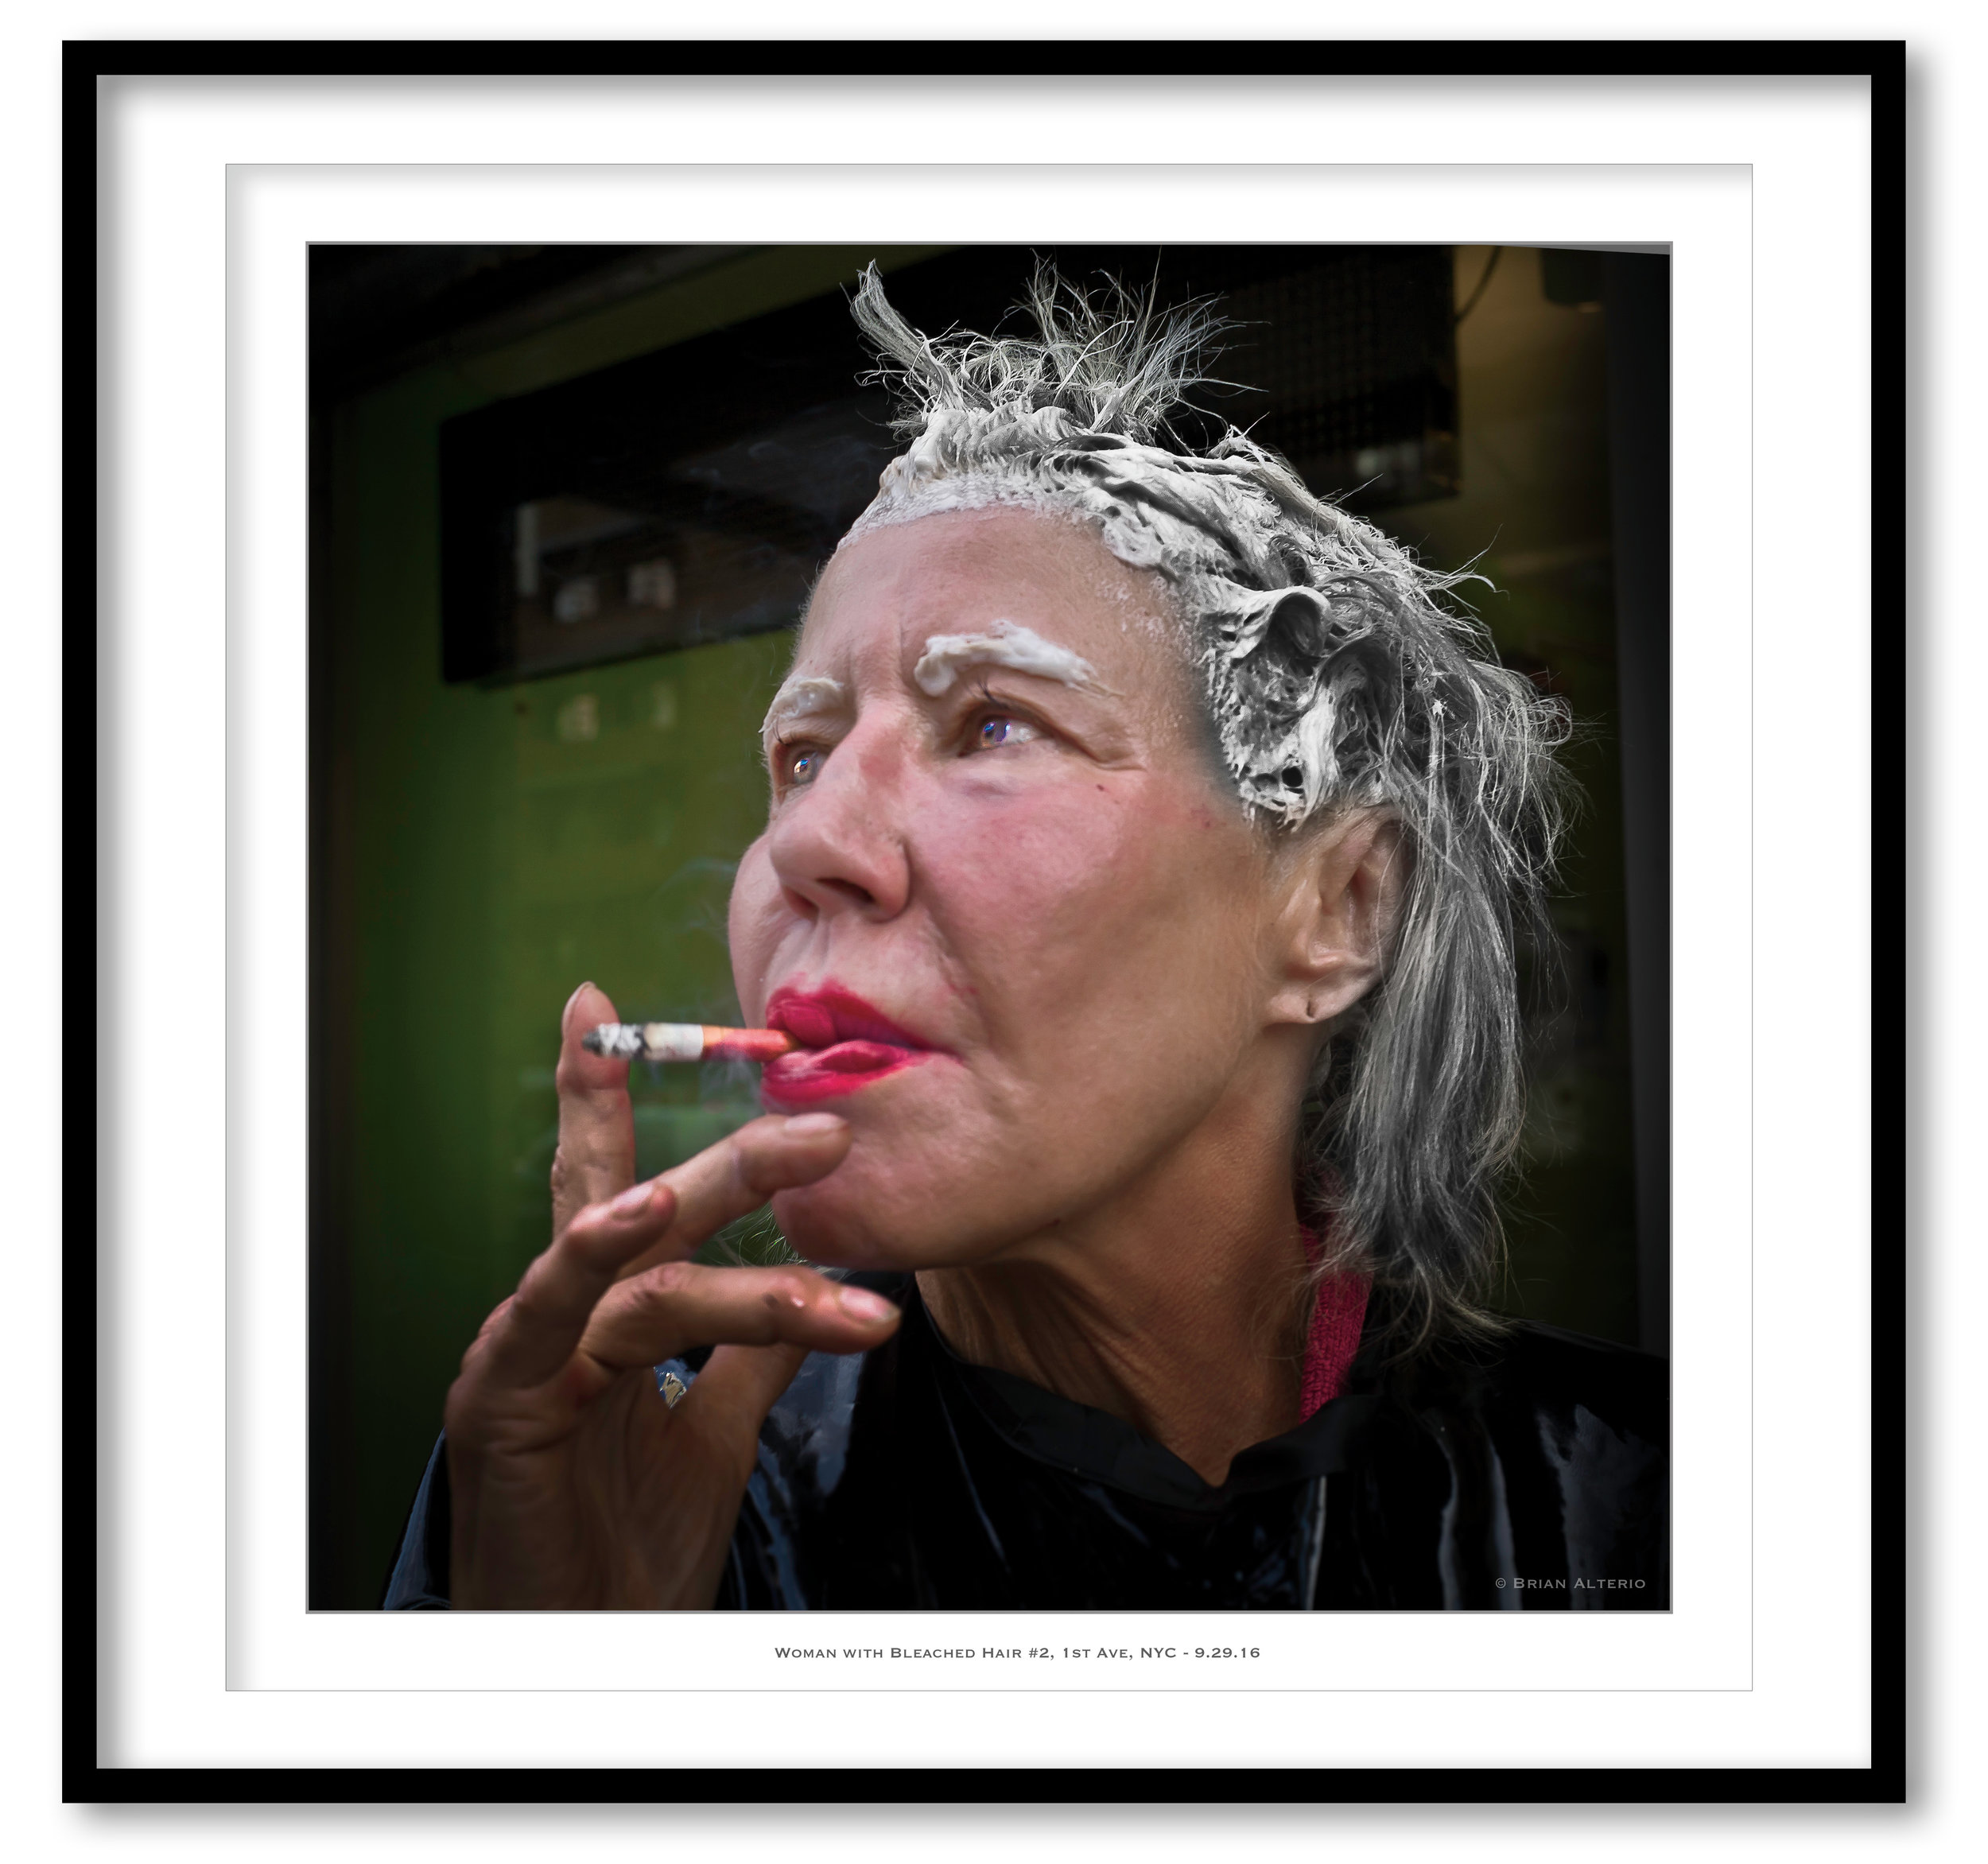 Woman with Bleached Hair #2, 1st Ave, NYC - 9.29.16 - Framed  - Framed.jpg